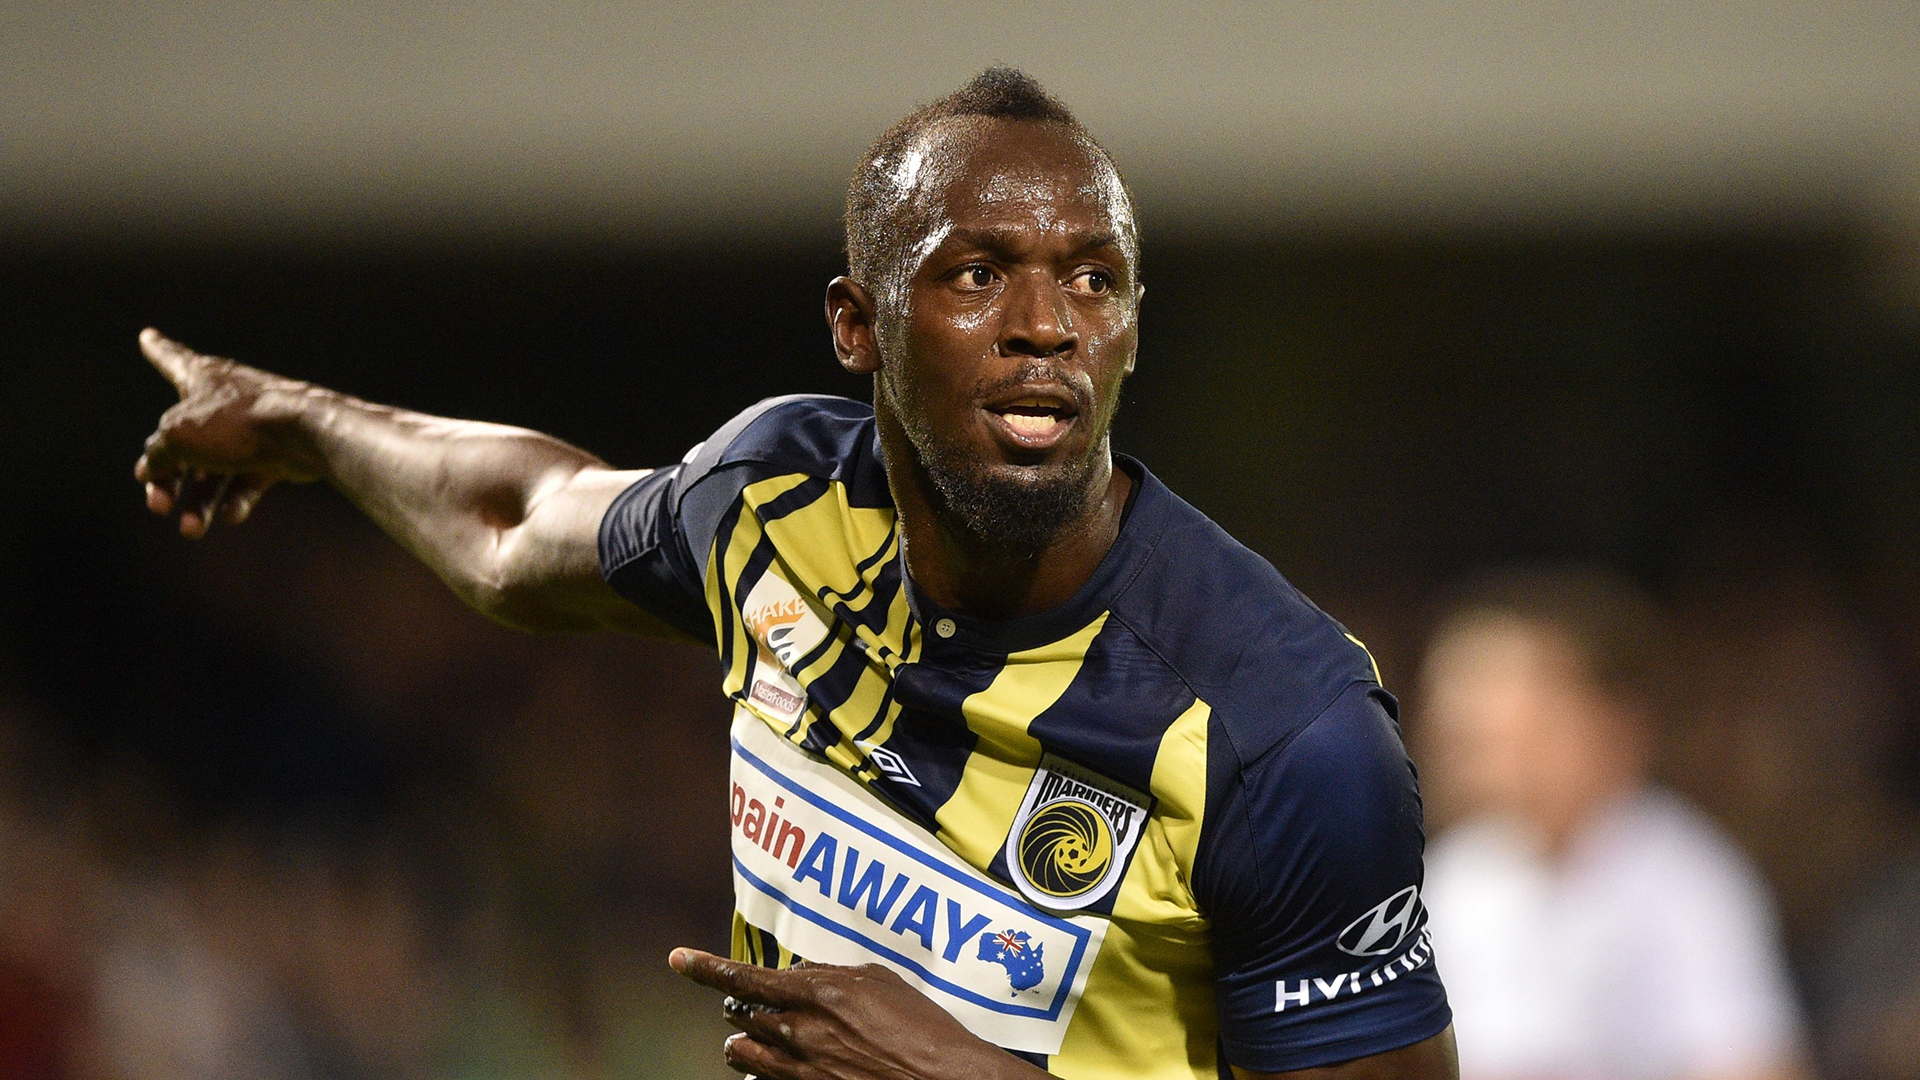 Bolt's A-League adventure comes to an end